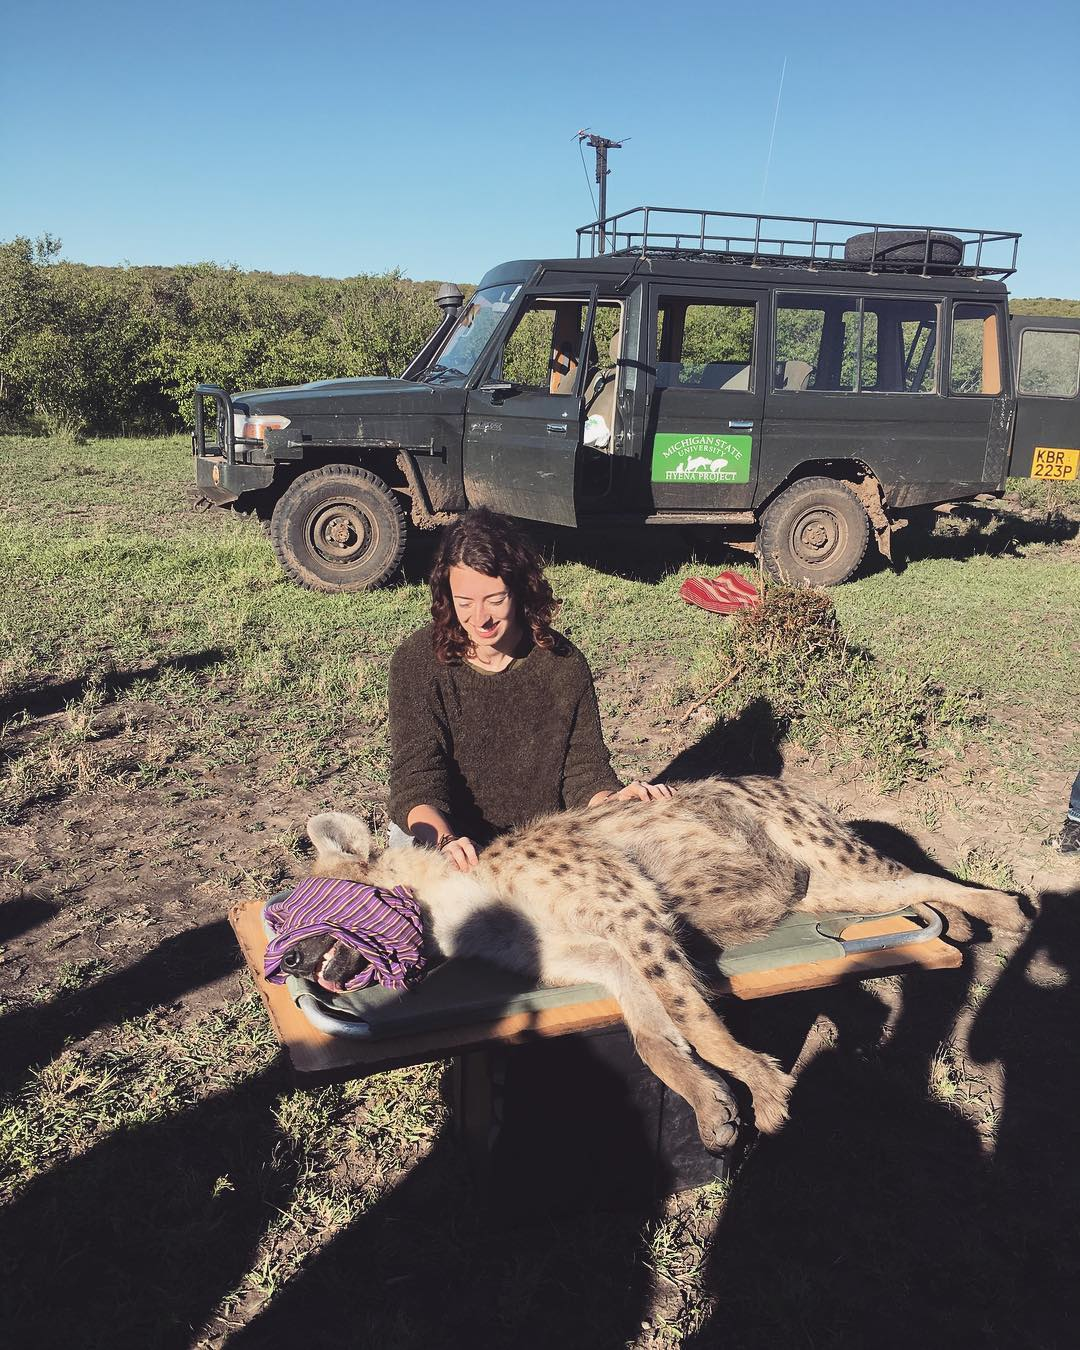 Paige Barnes kneeling next to an anesthetized hyena in Kenya.